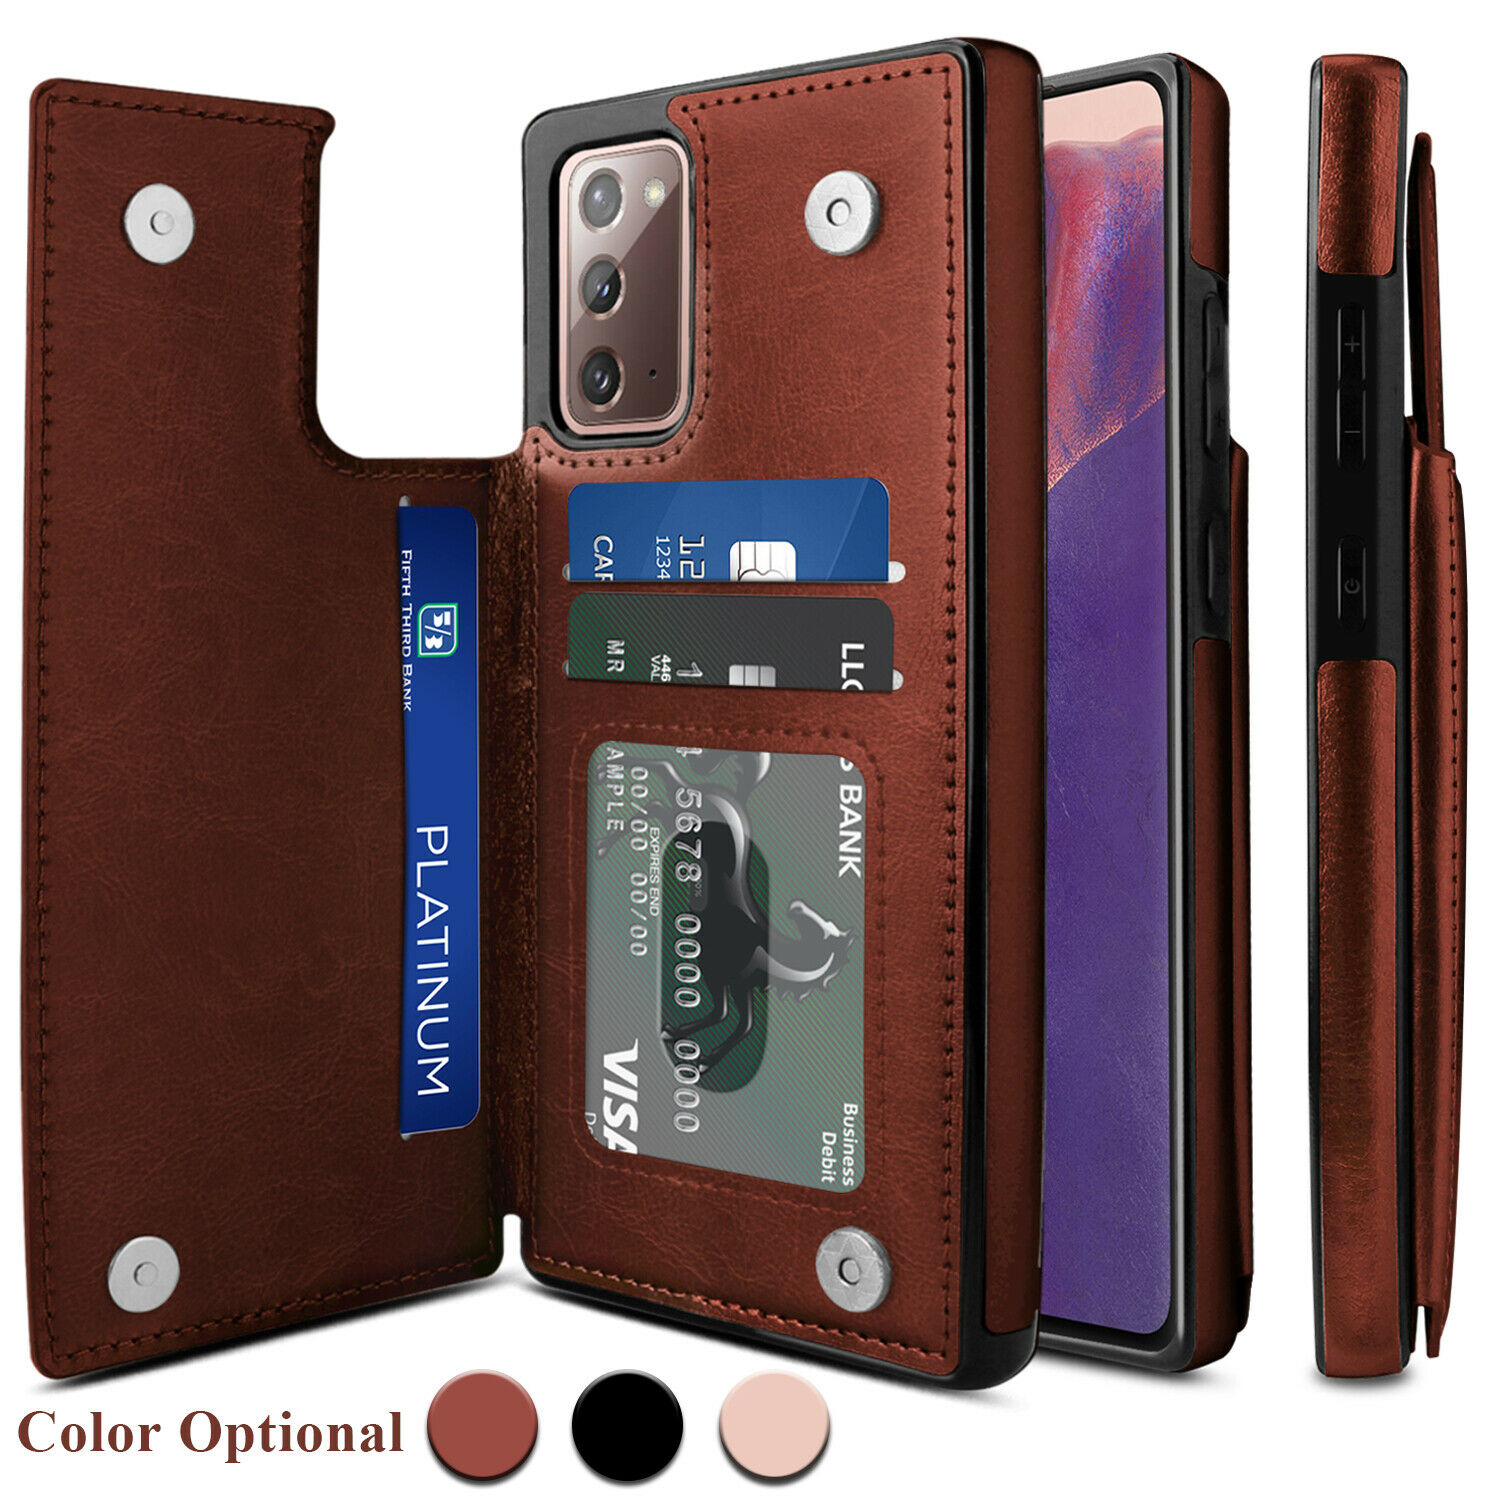 Leather Zipper Back Wallet Case for Samsung Galaxy S8,Yobby Samsung Galaxy S8 Slim Black Case with Card Holder,Shockproof Protective Bumper Stand Magnetic Closure Cover